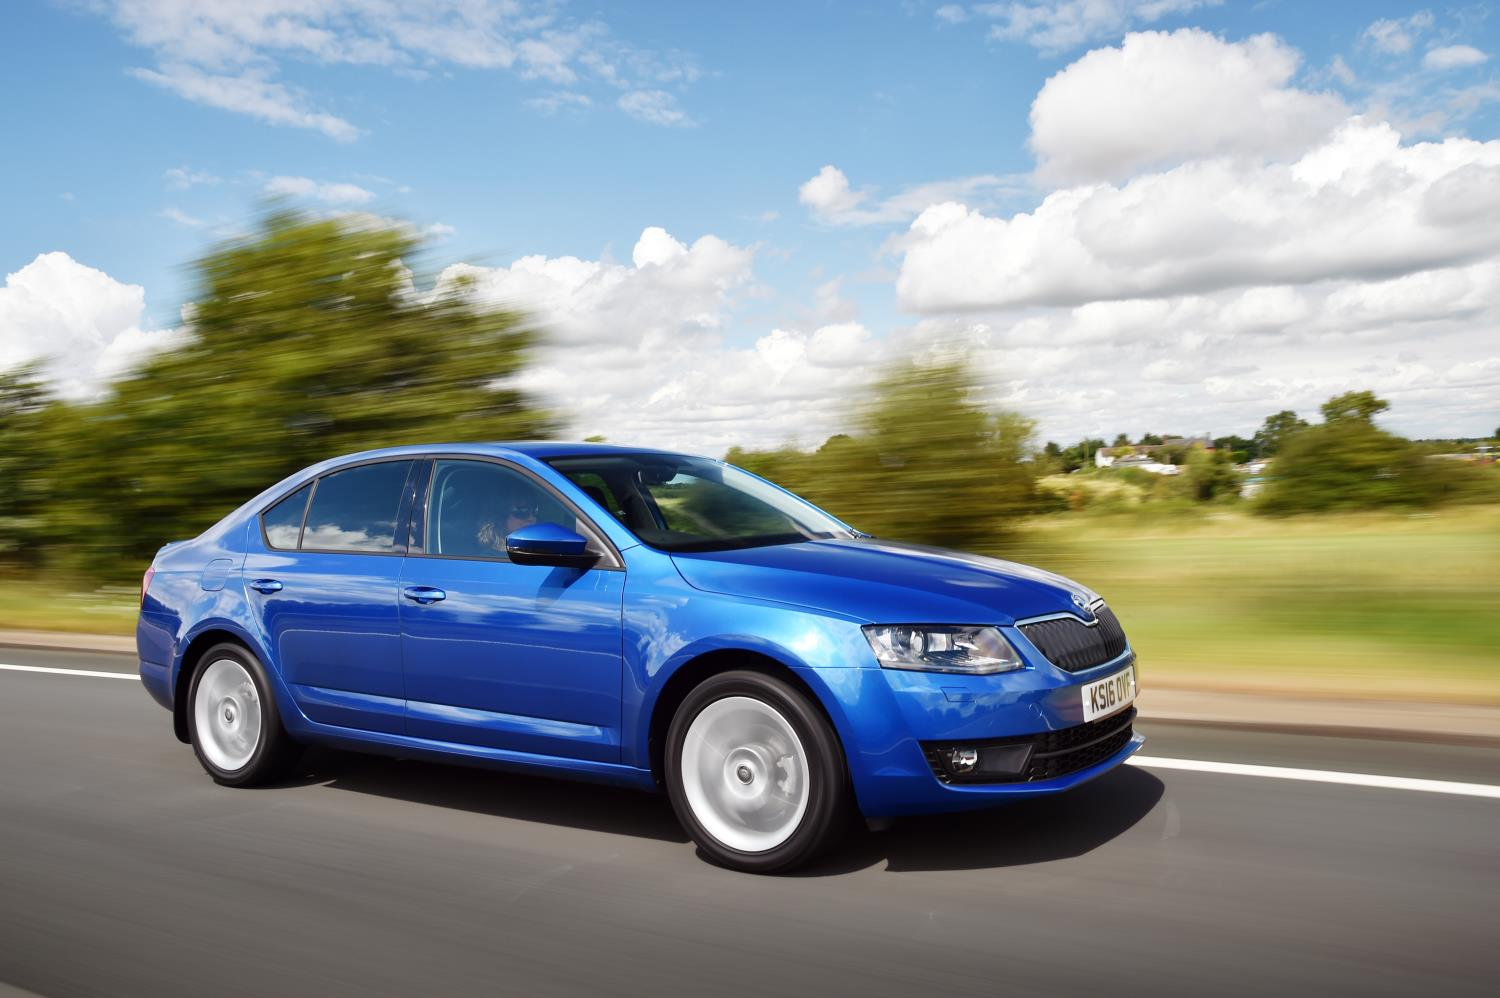 Skoda Octavia side view on road in blue